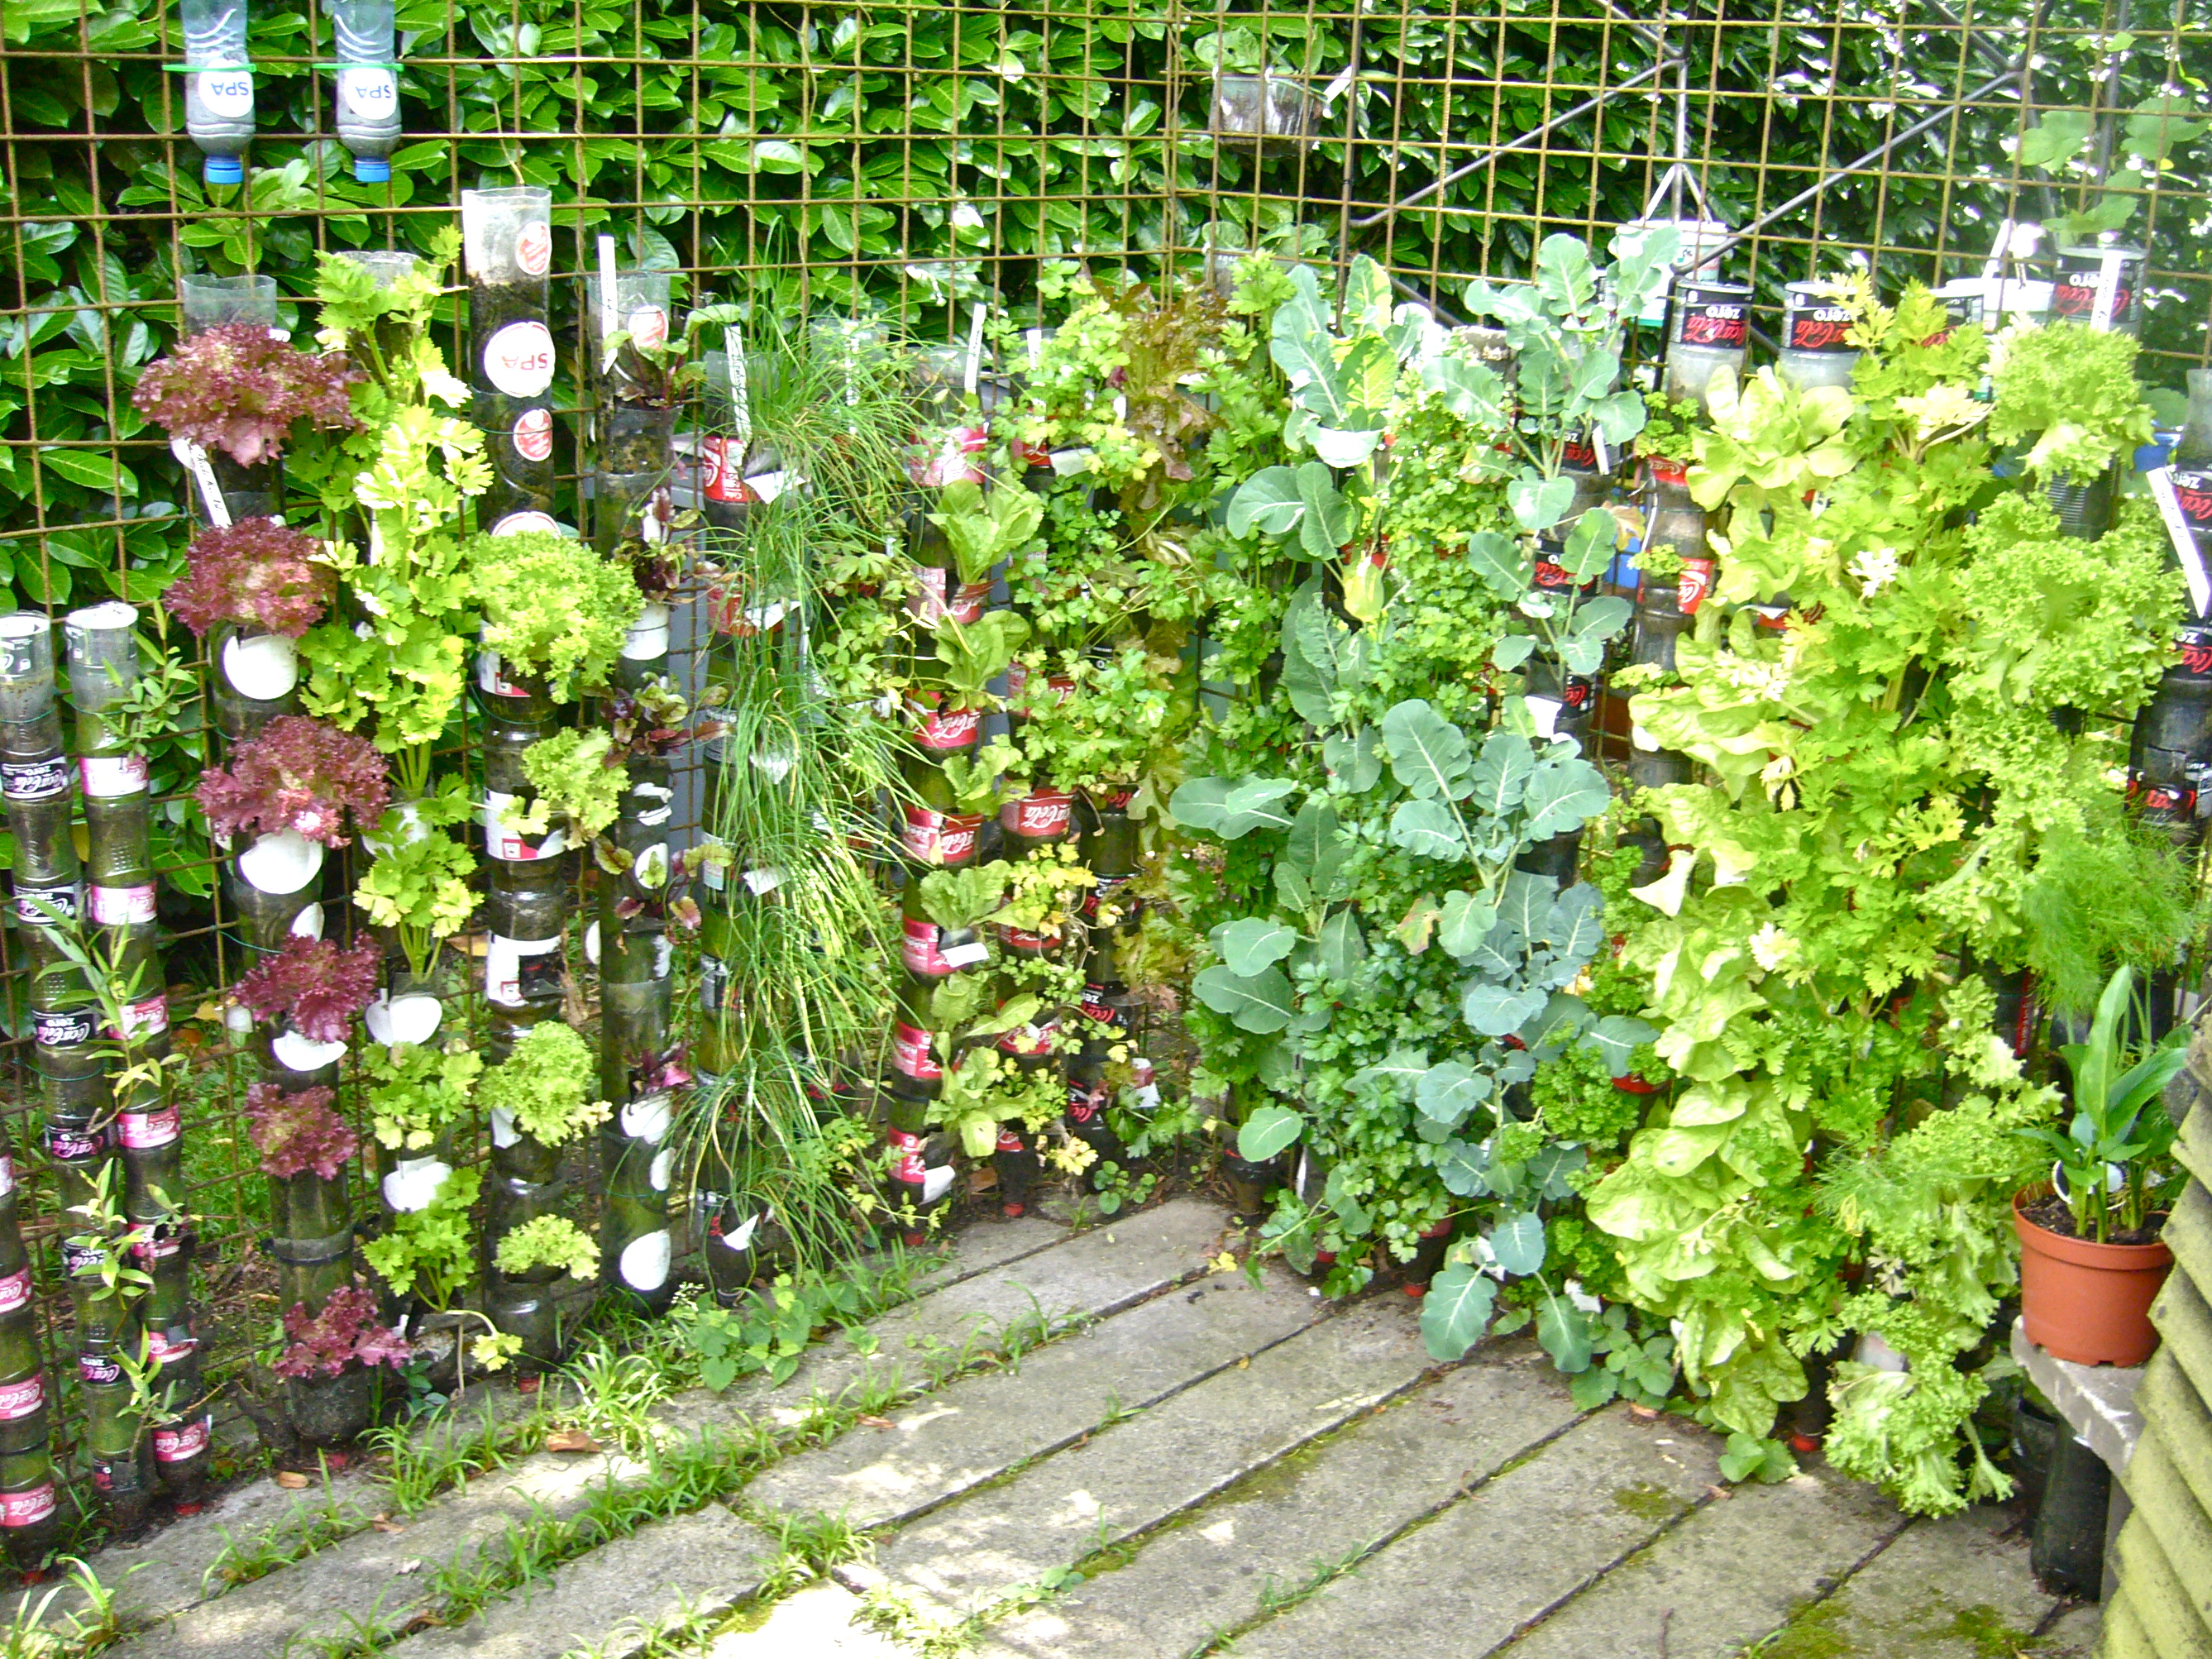 Vertical gardening desertification for Small vegetable garden